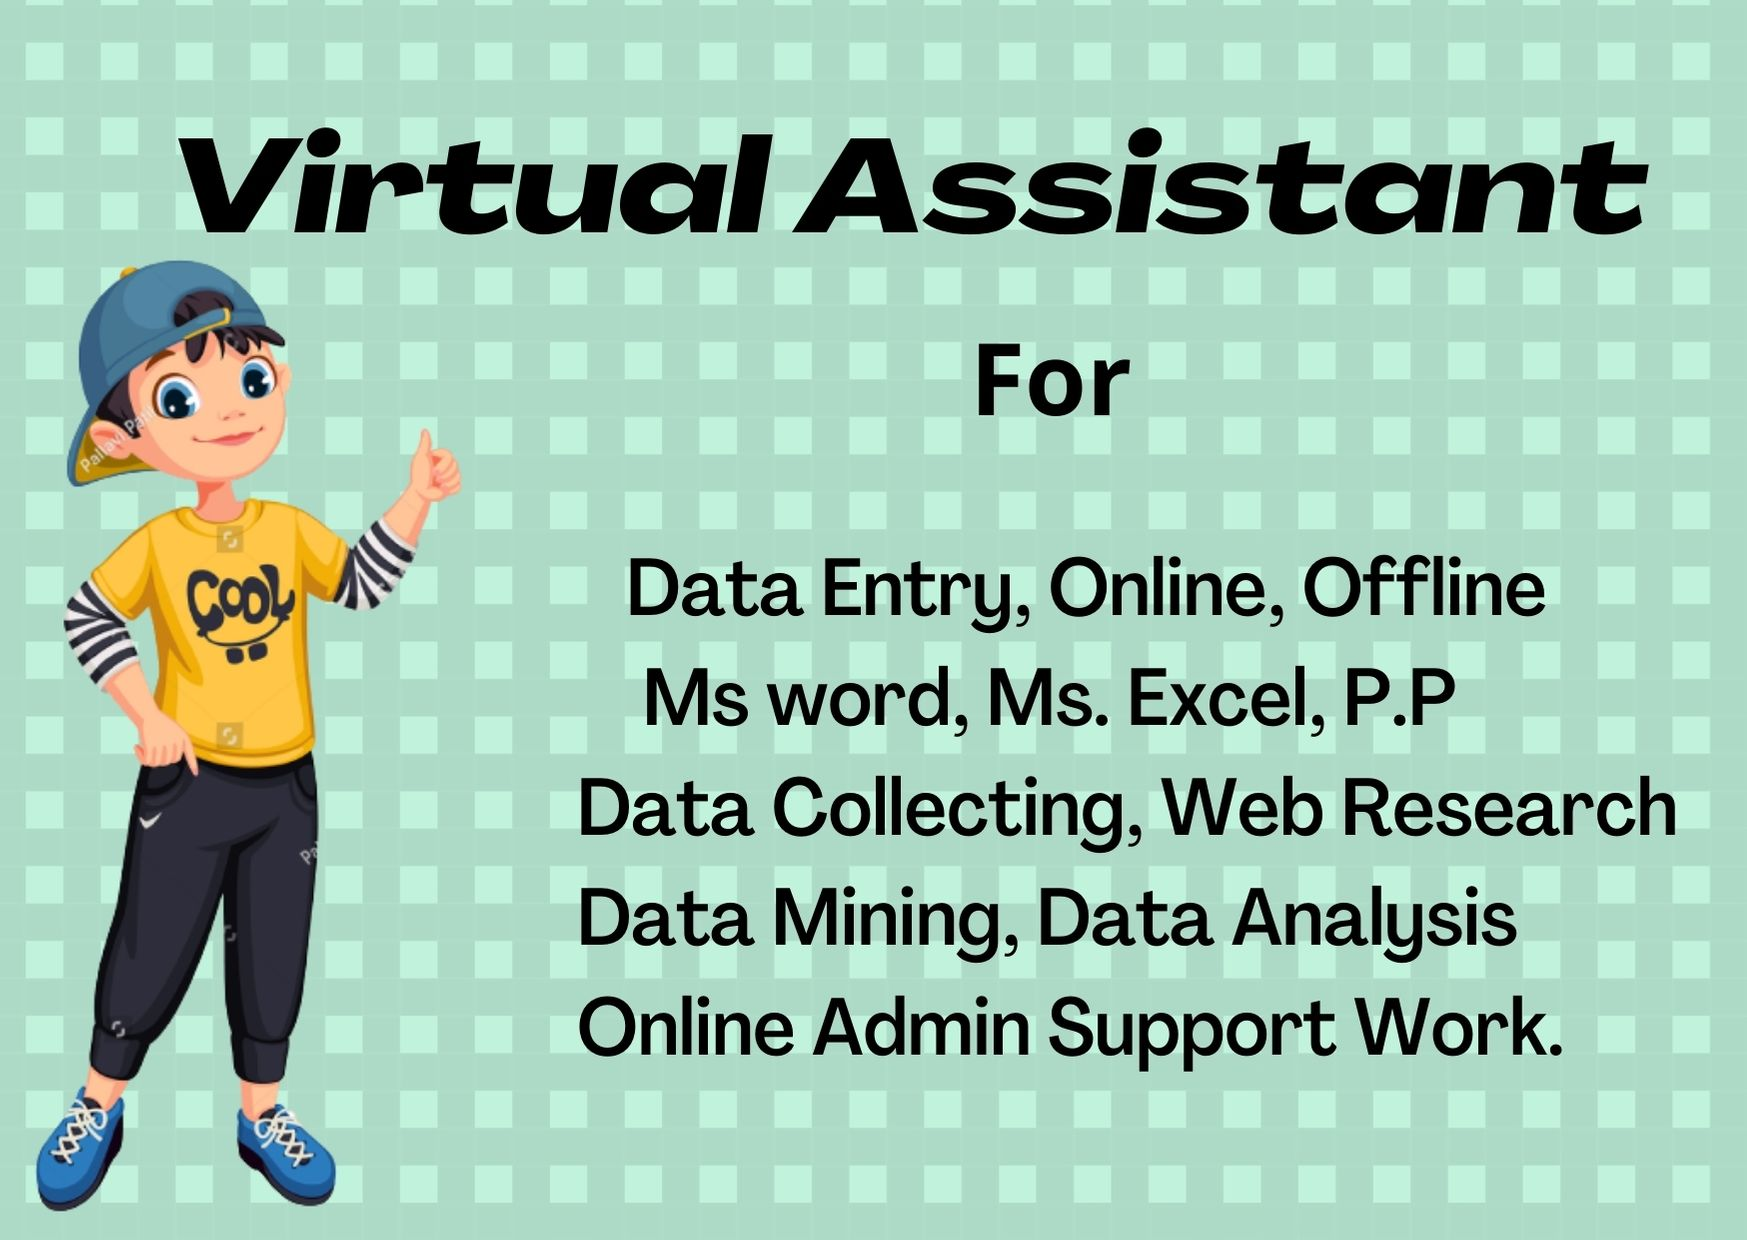 I will be your Virtual Assistant for Data Entry and Admin Support works